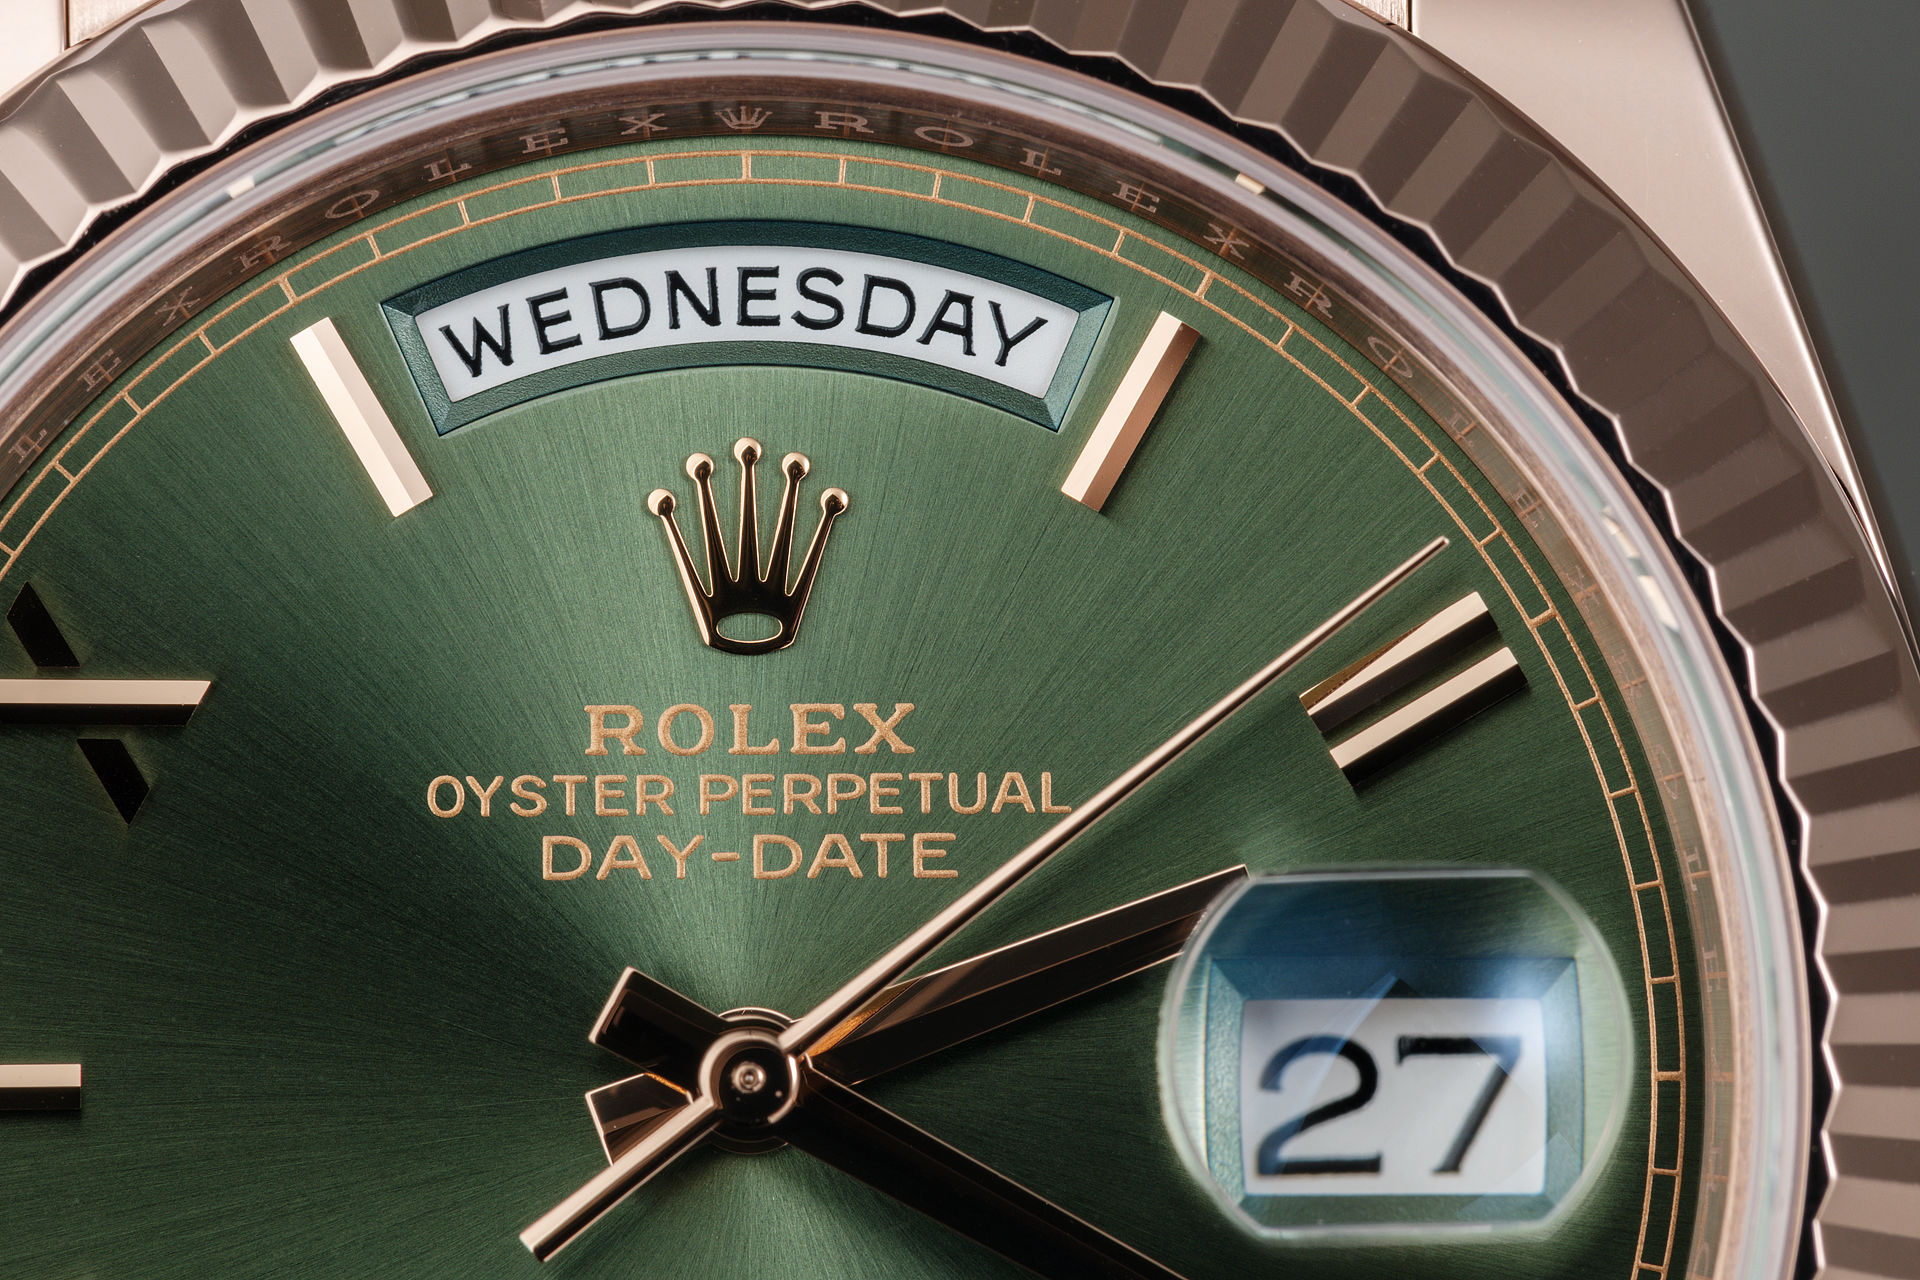 Everose Gold - Rolex Warranty | ref 228235 | Rolex Day-Date